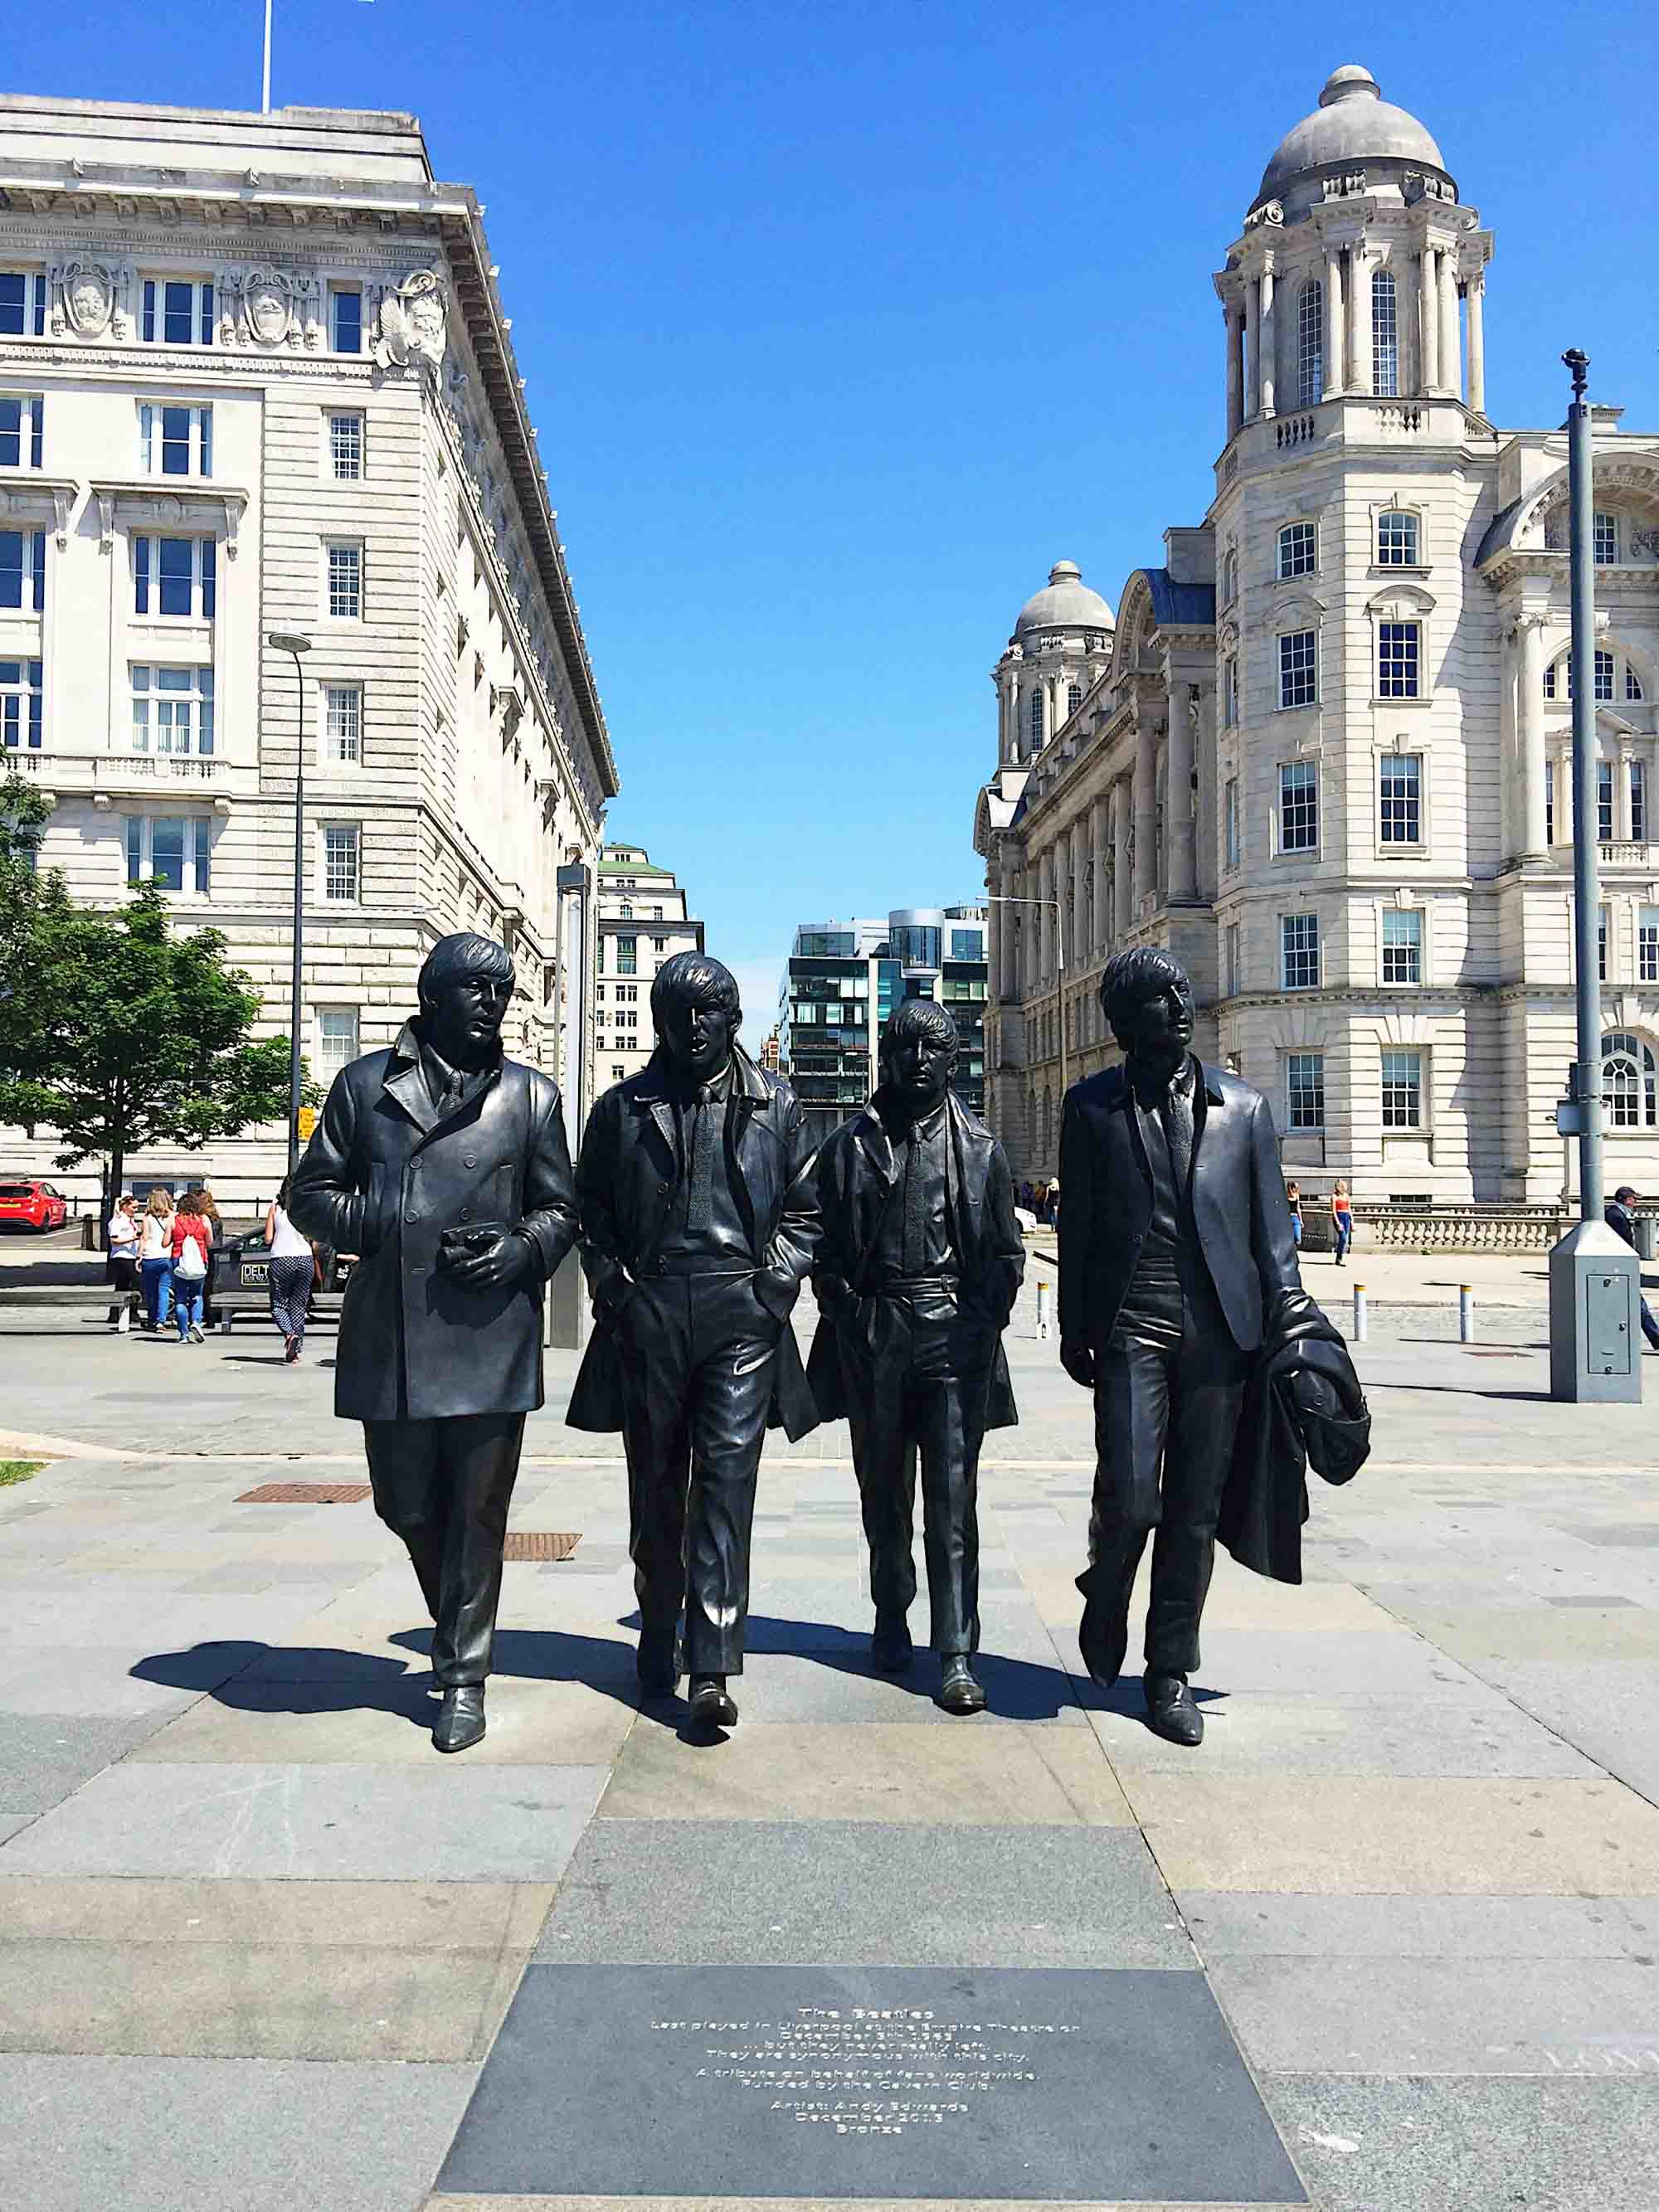 Best things to do in Liverpool - Beatles Statue